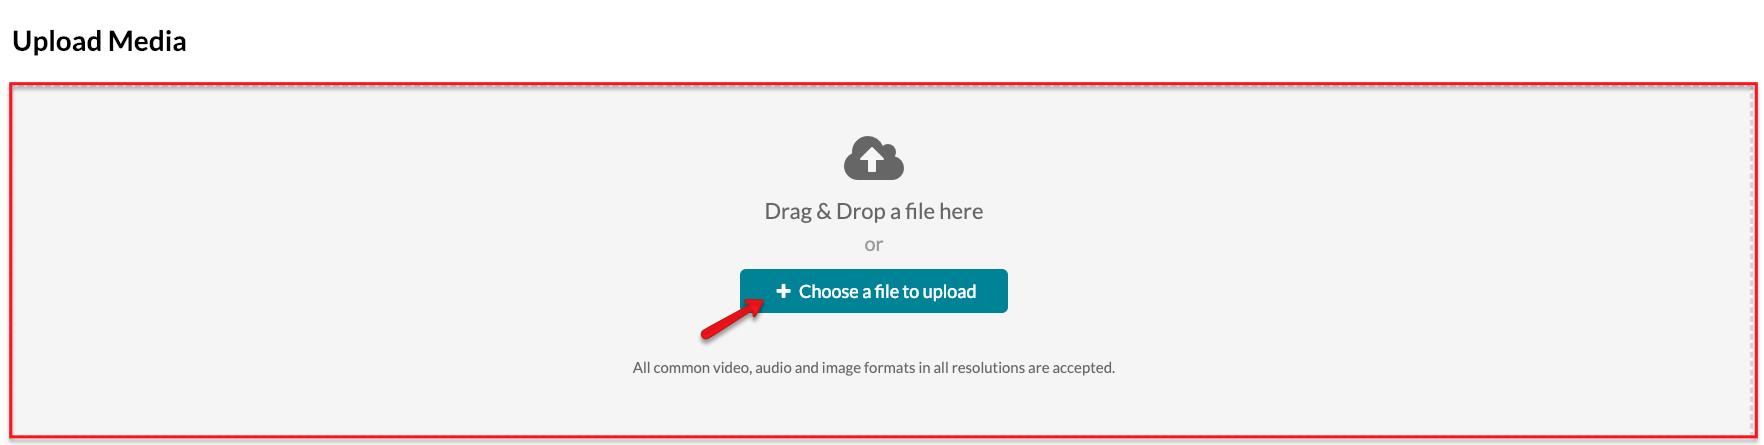 Choose a file to upload.